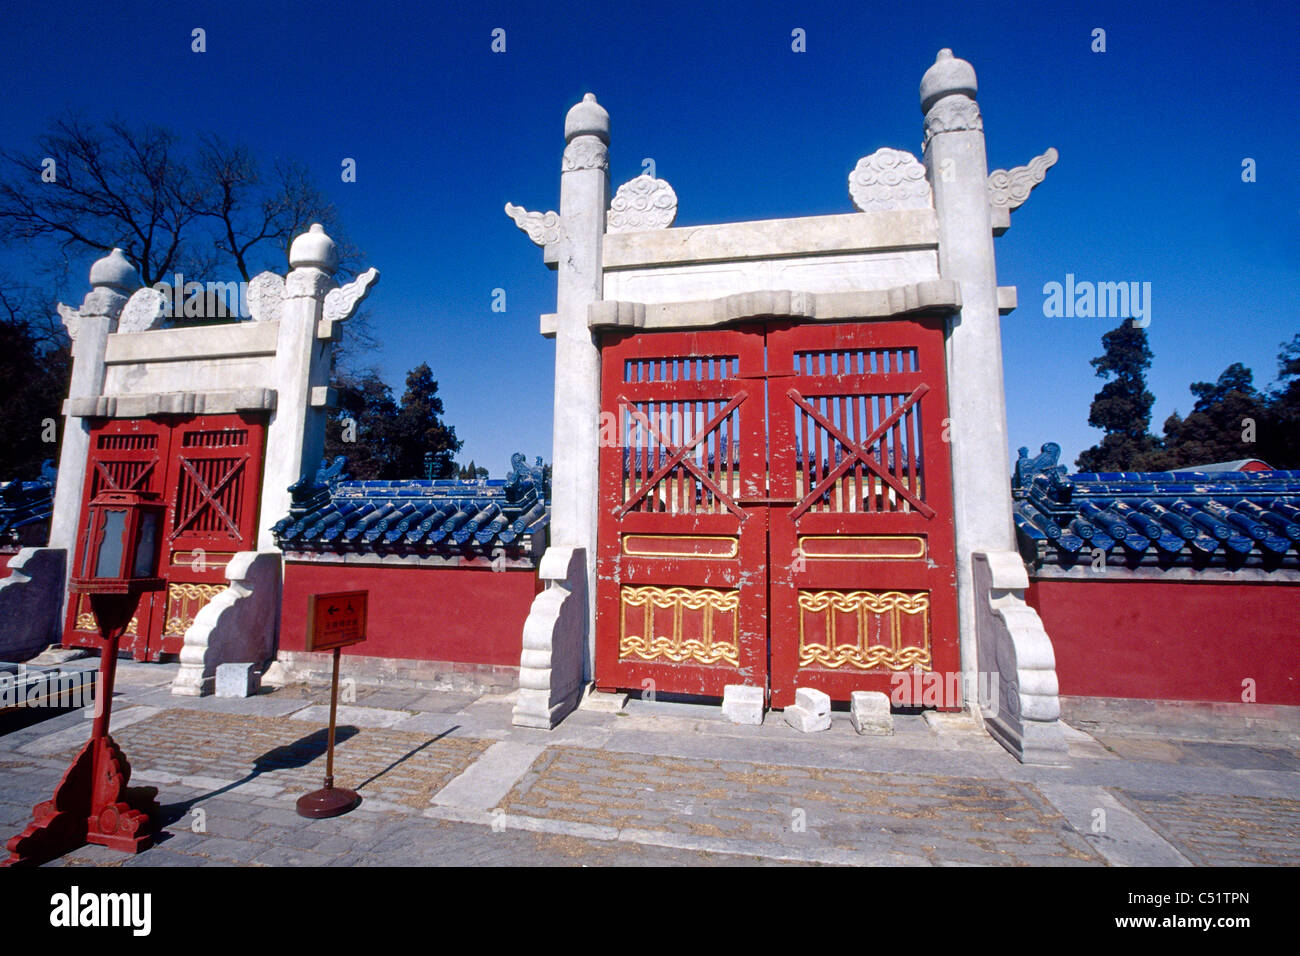 Gates in Temple of Heaven, Beijing, China - Stock Image